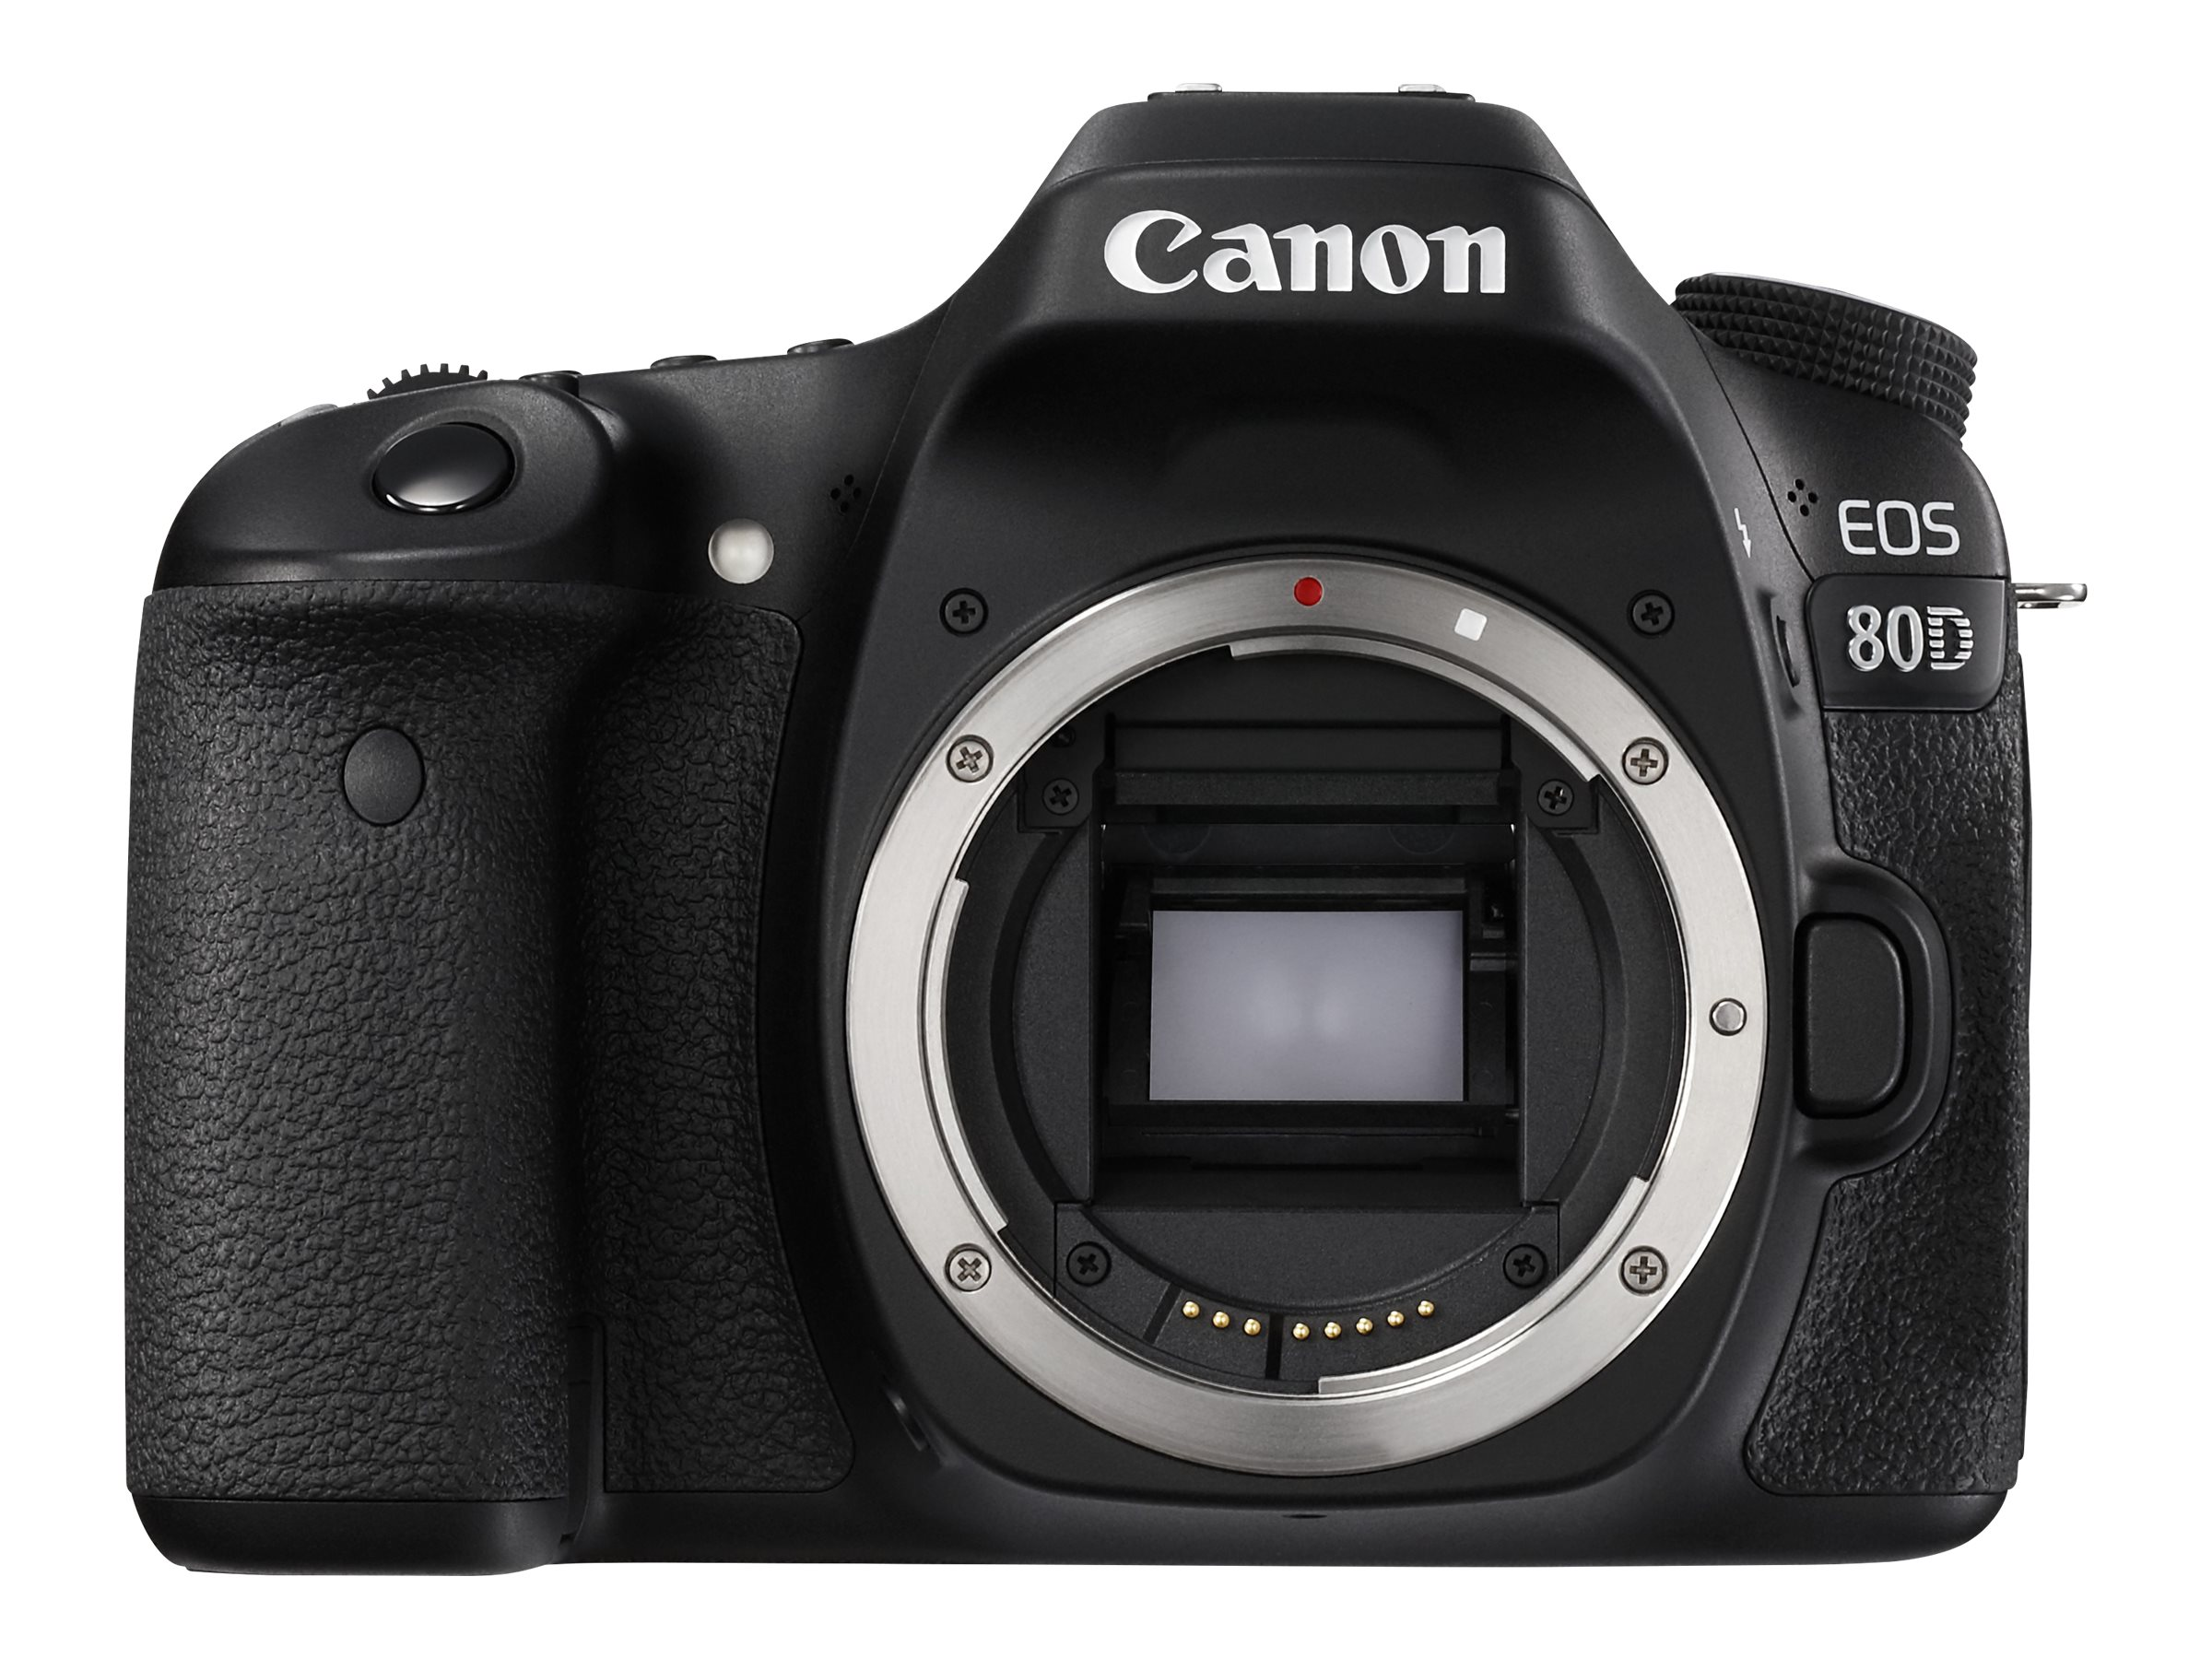 Image for Canon EOS 80D DSLR Camera with 18-135mm f/3.5-5.6 IS USM Lens from Circuit City